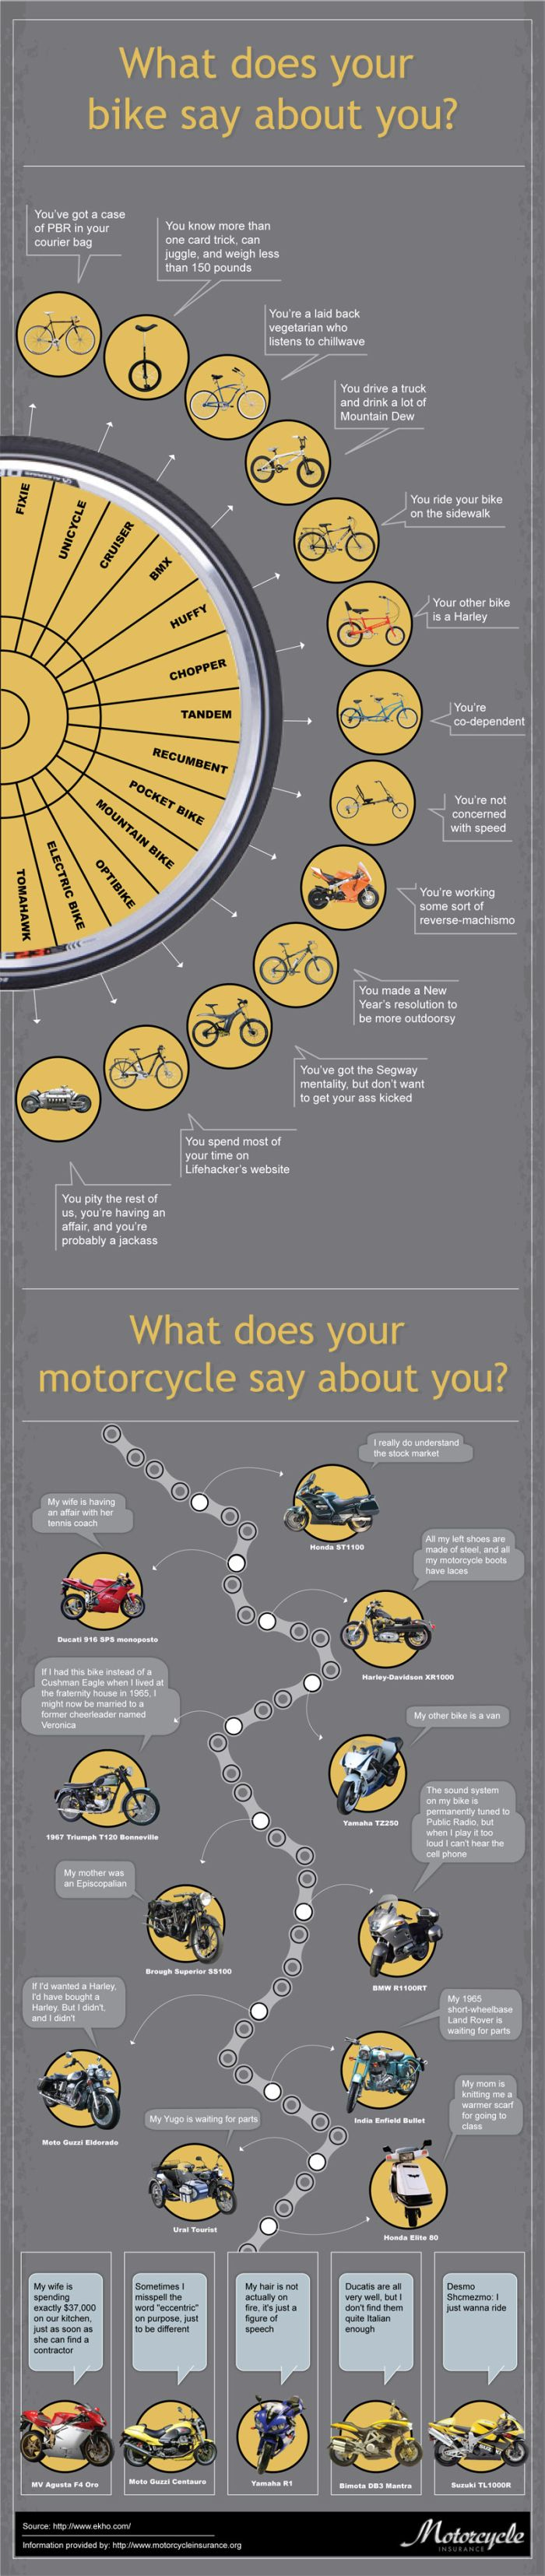 What Does Your Bike or Motorcycle Say About You (infographic)